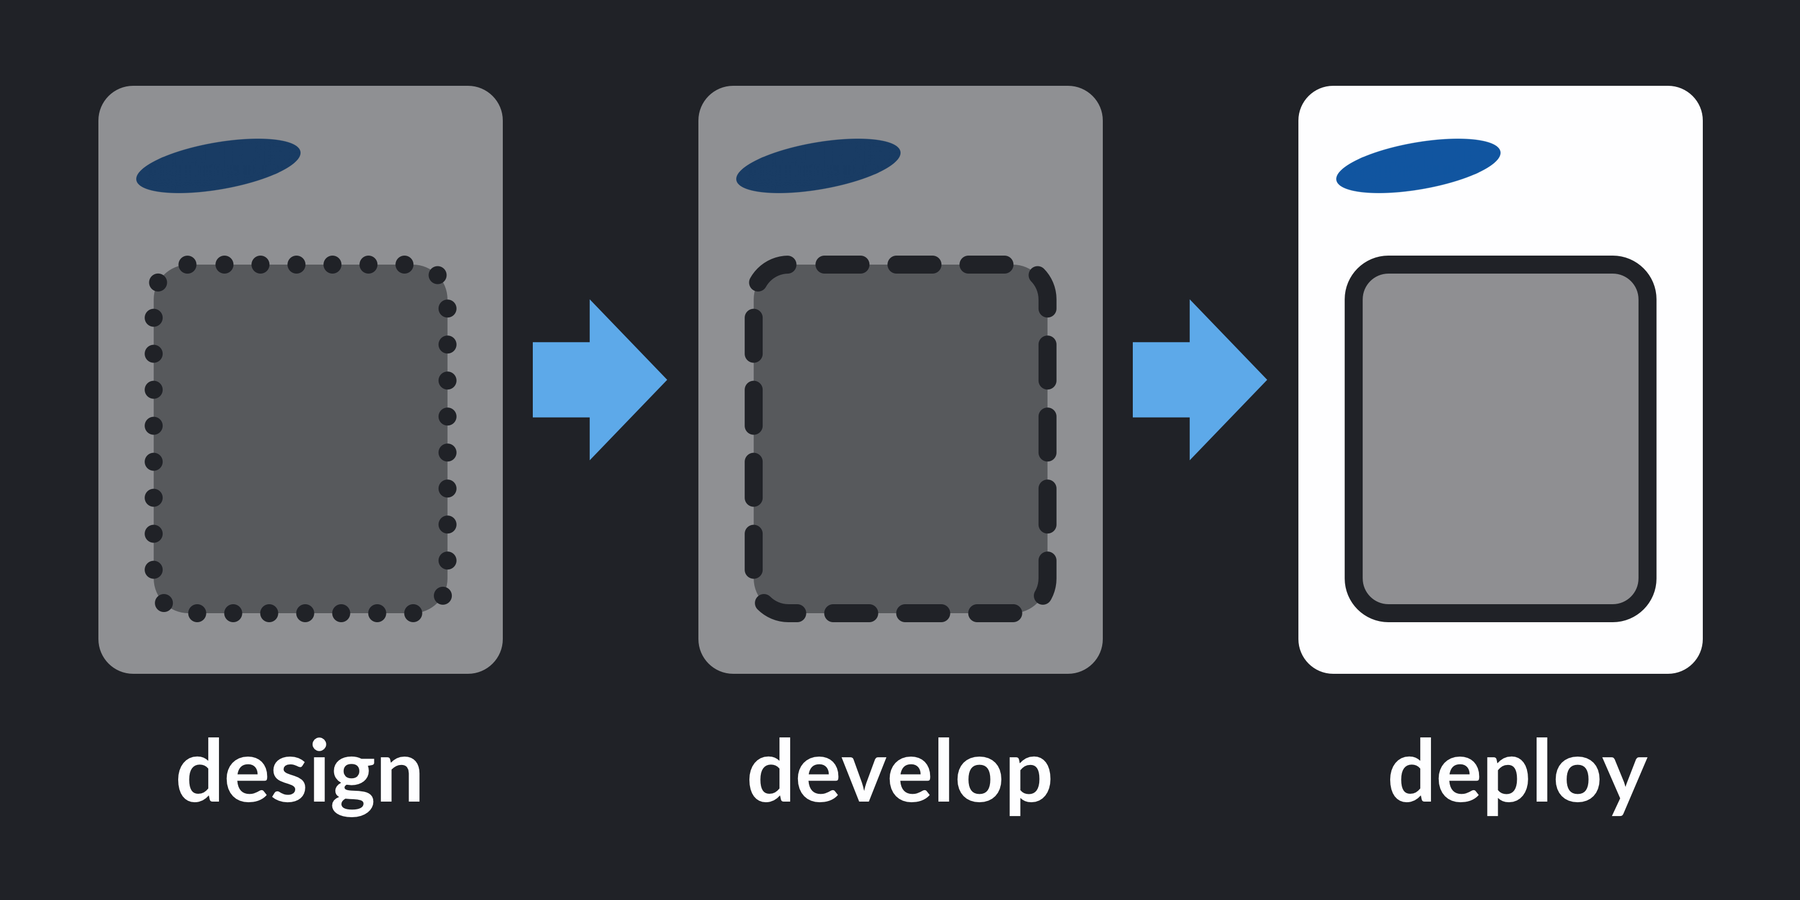 Process: design, develop, deploy